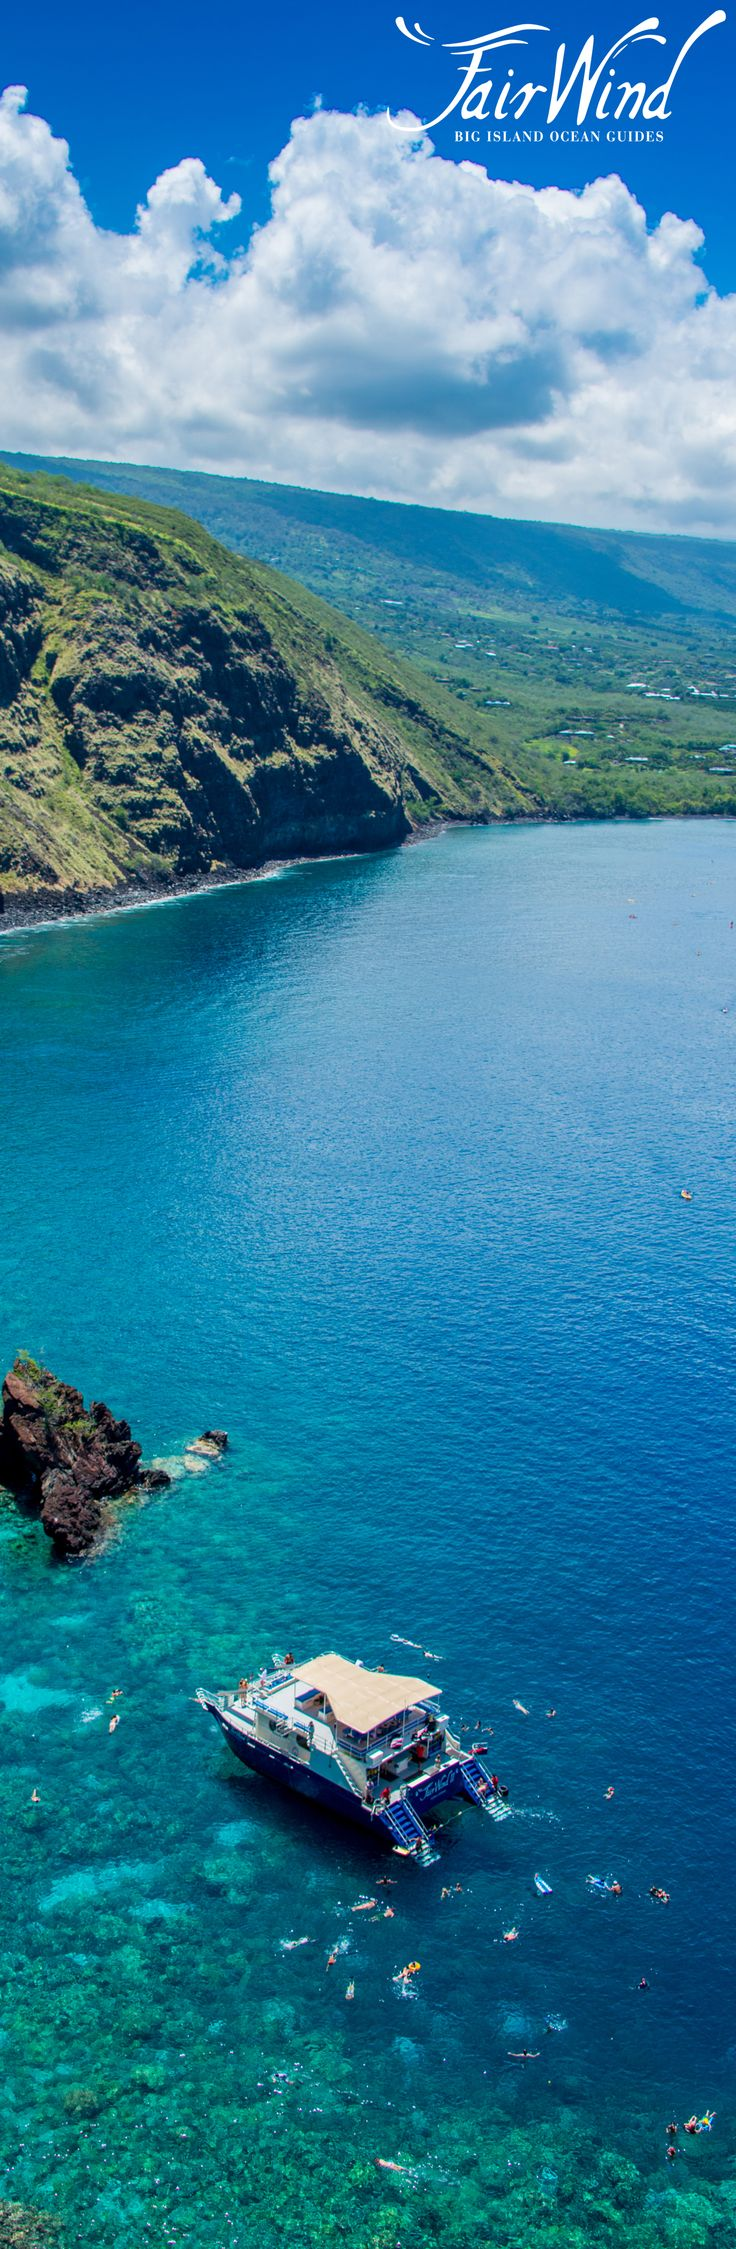 30 best fair wind ii images on pinterest kealakekua bay cruises hawaiis best snorkel cruise join fair wind cruises as it heads down the south kona nvjuhfo Image collections